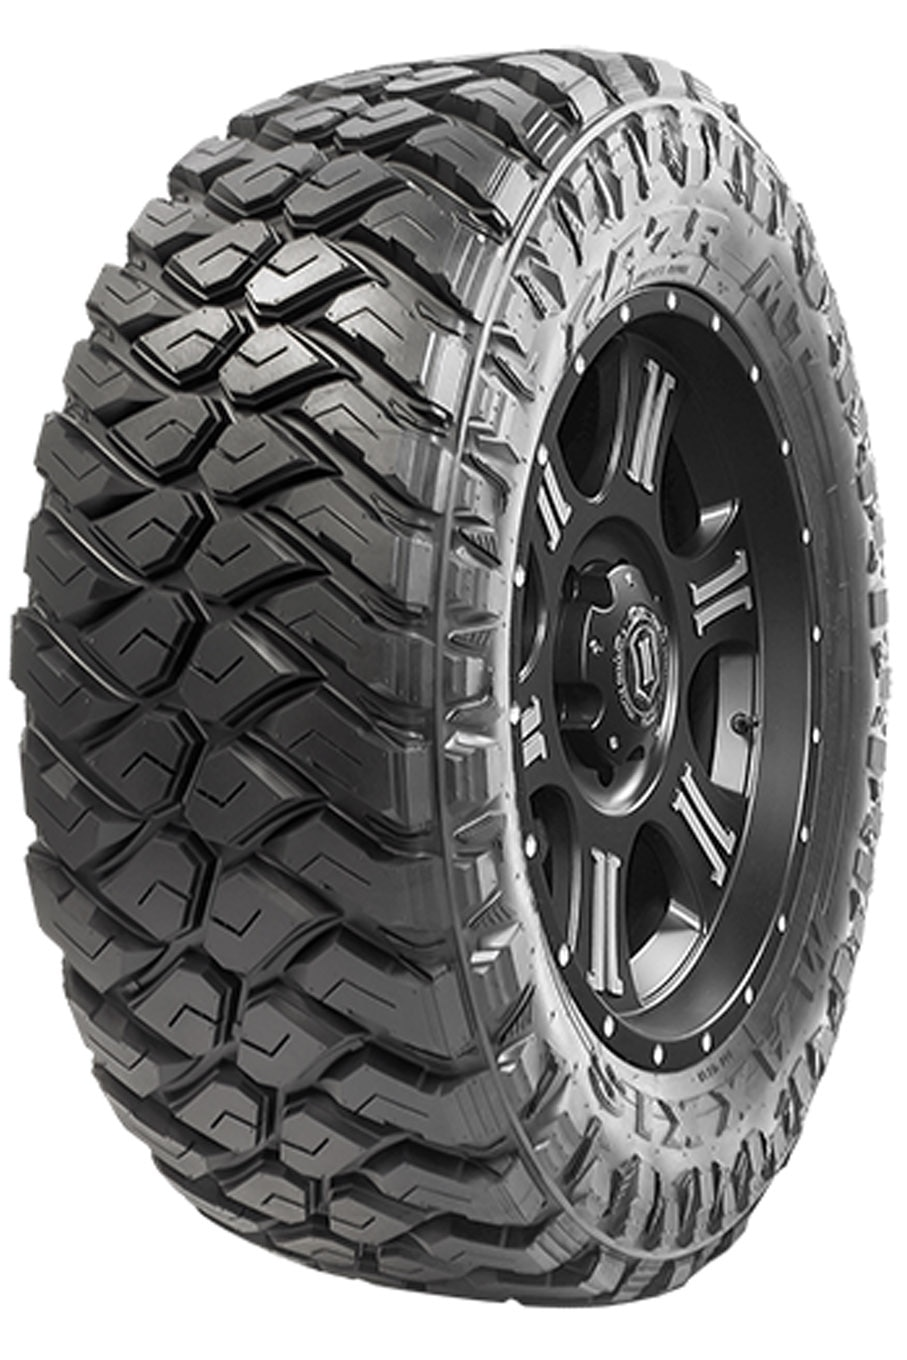 029 new tires maxxis rzr mt